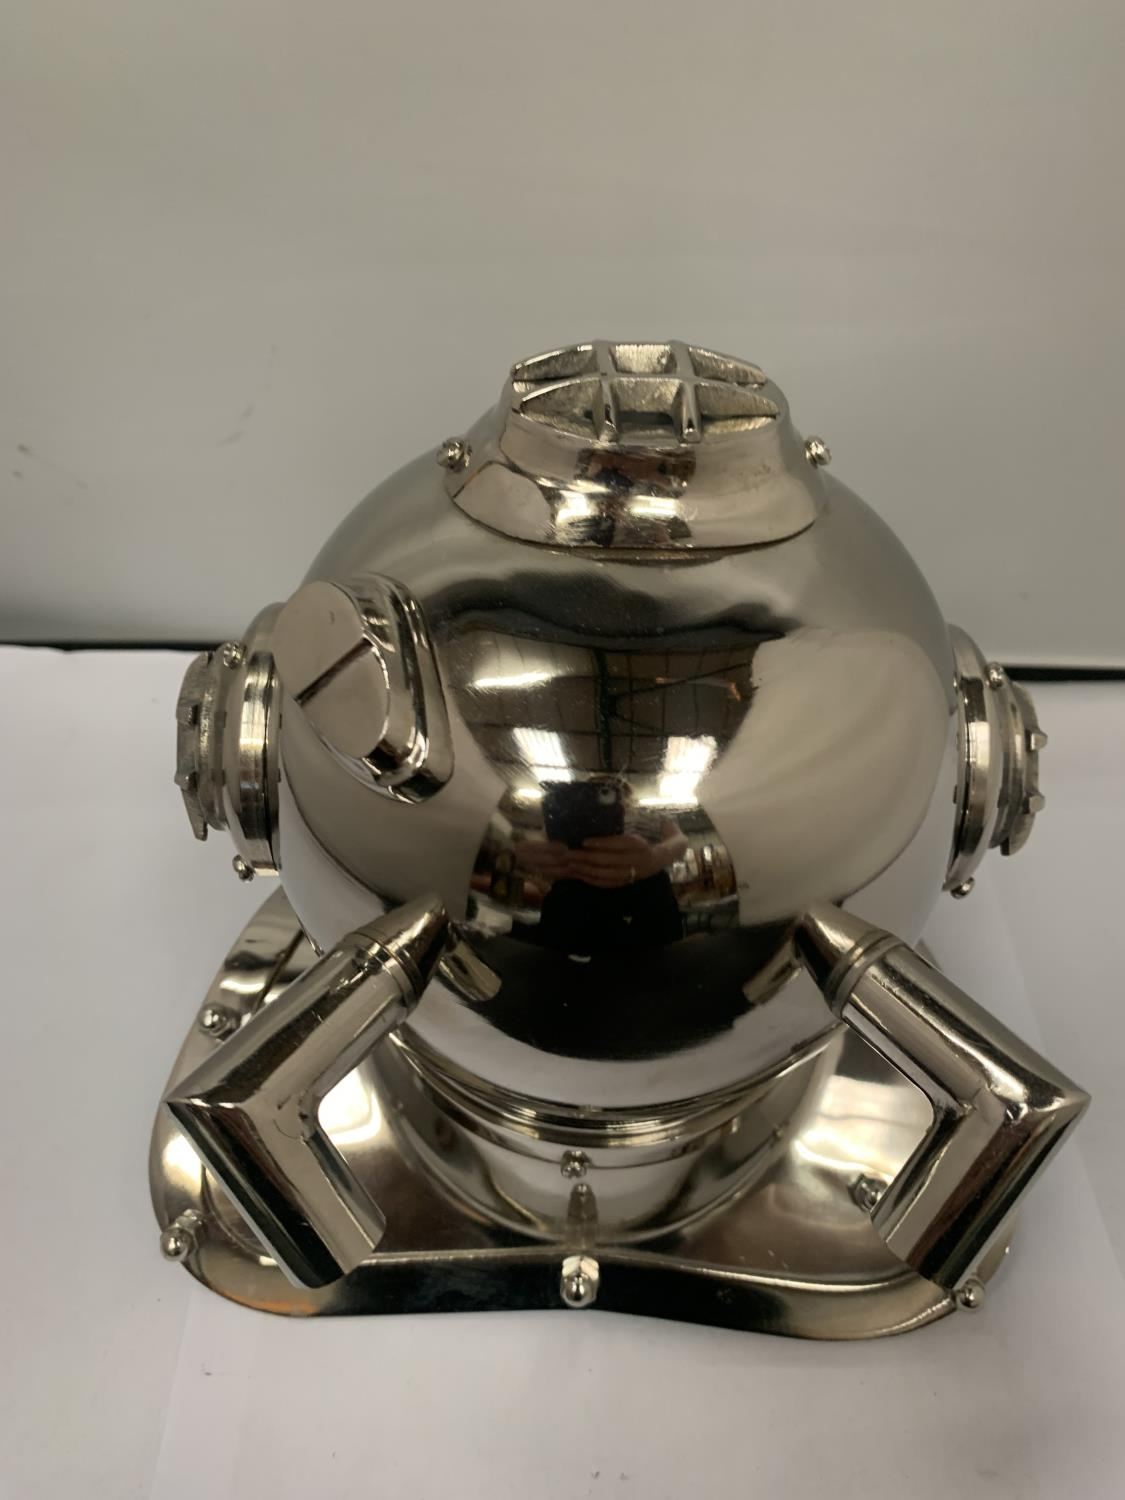 A CHROME MODEL OF A DIVERS HELMET - Image 3 of 3